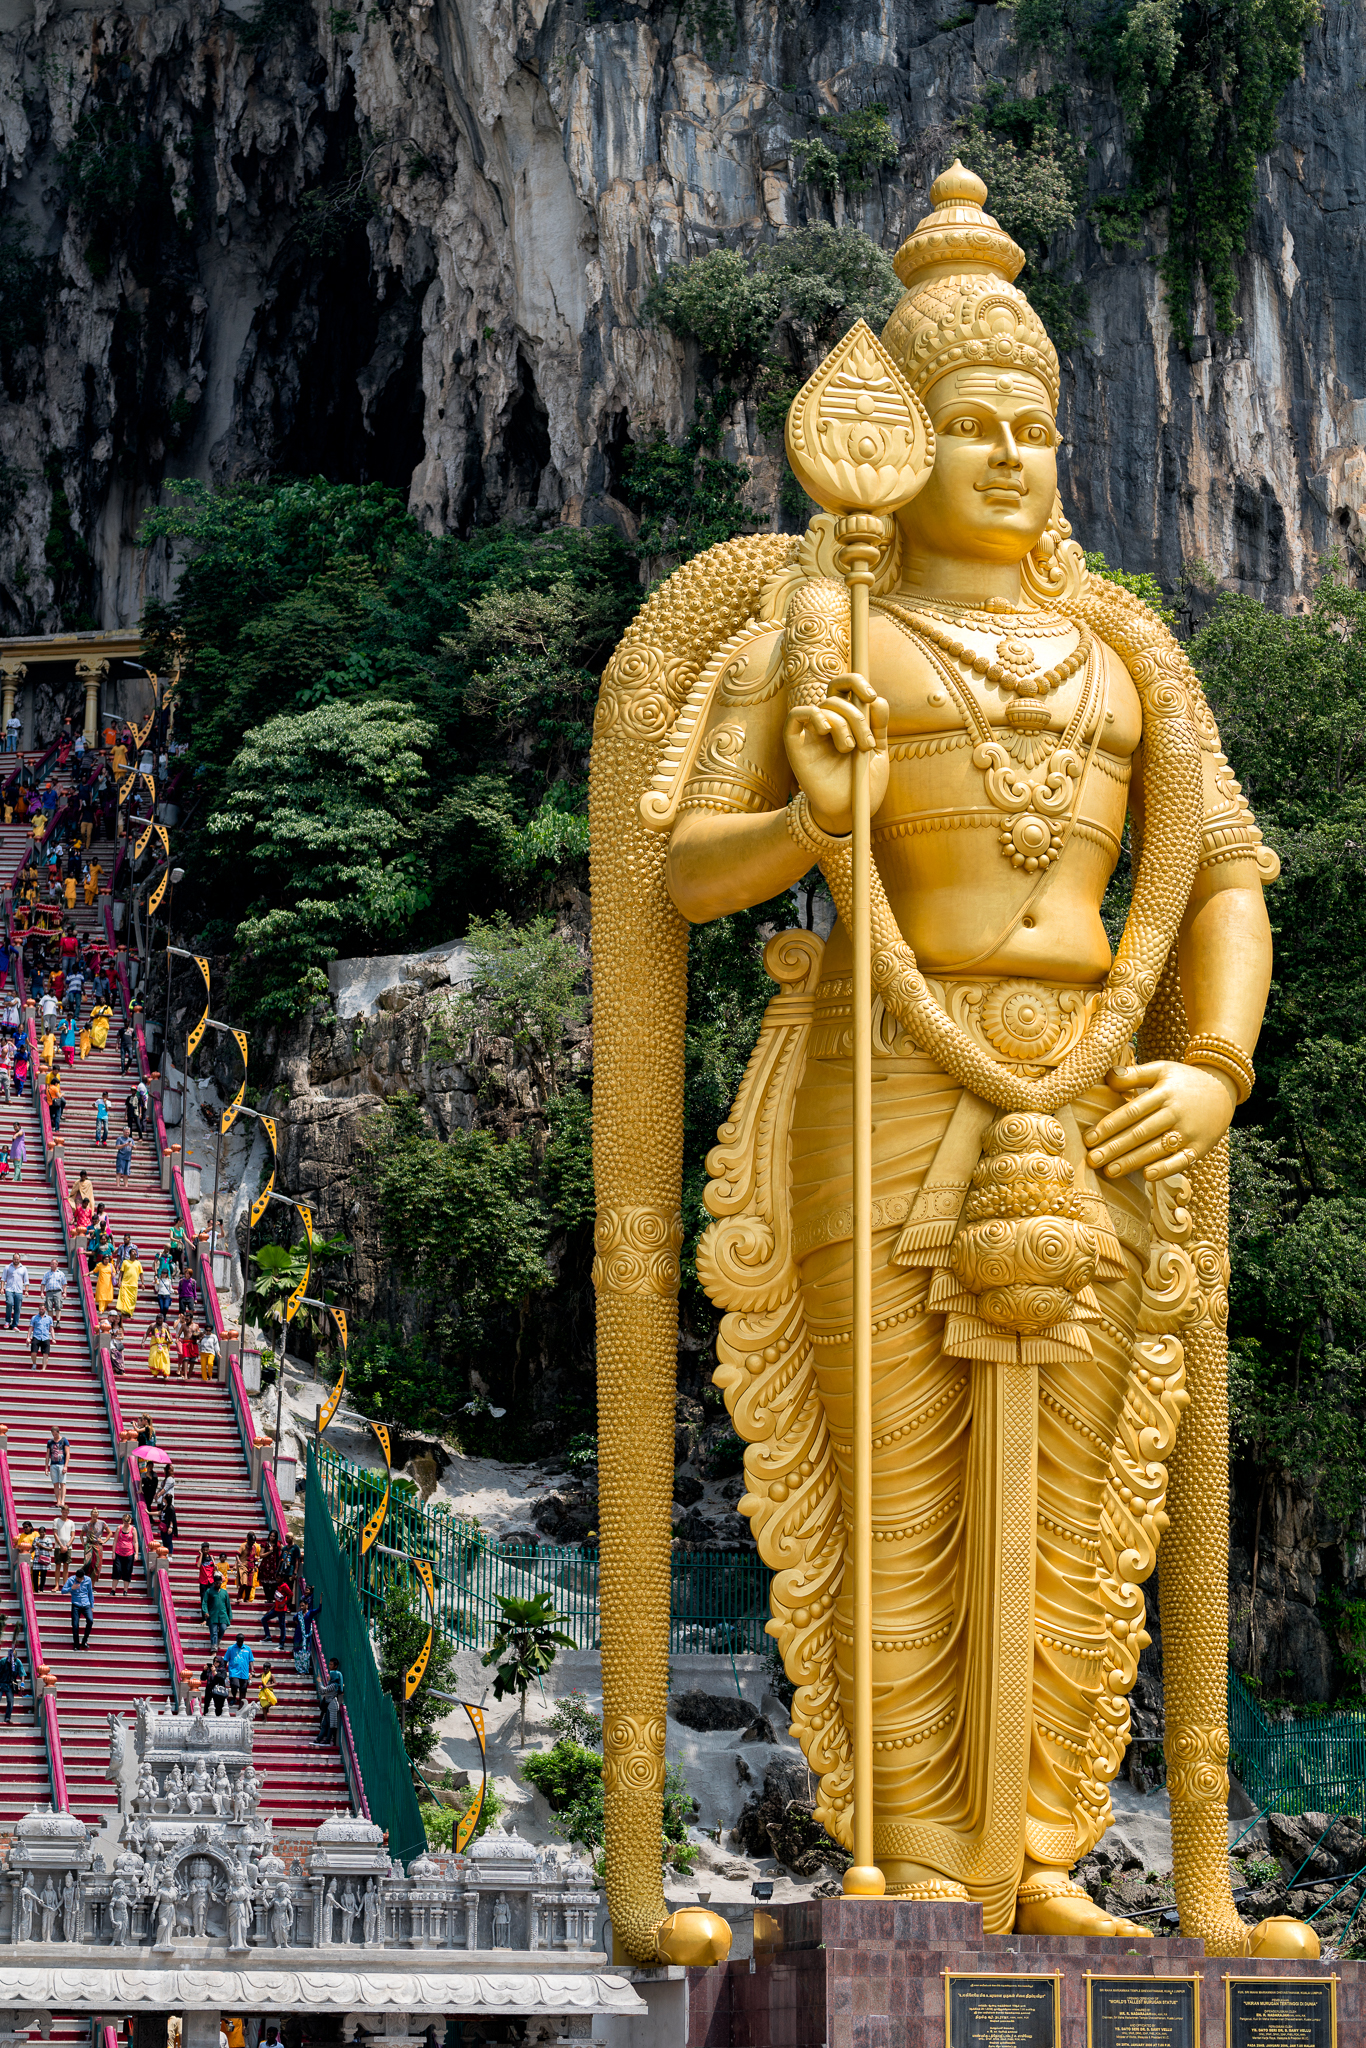 The main attraction - a giant statue of Lord Murugan, the indigenous god of war